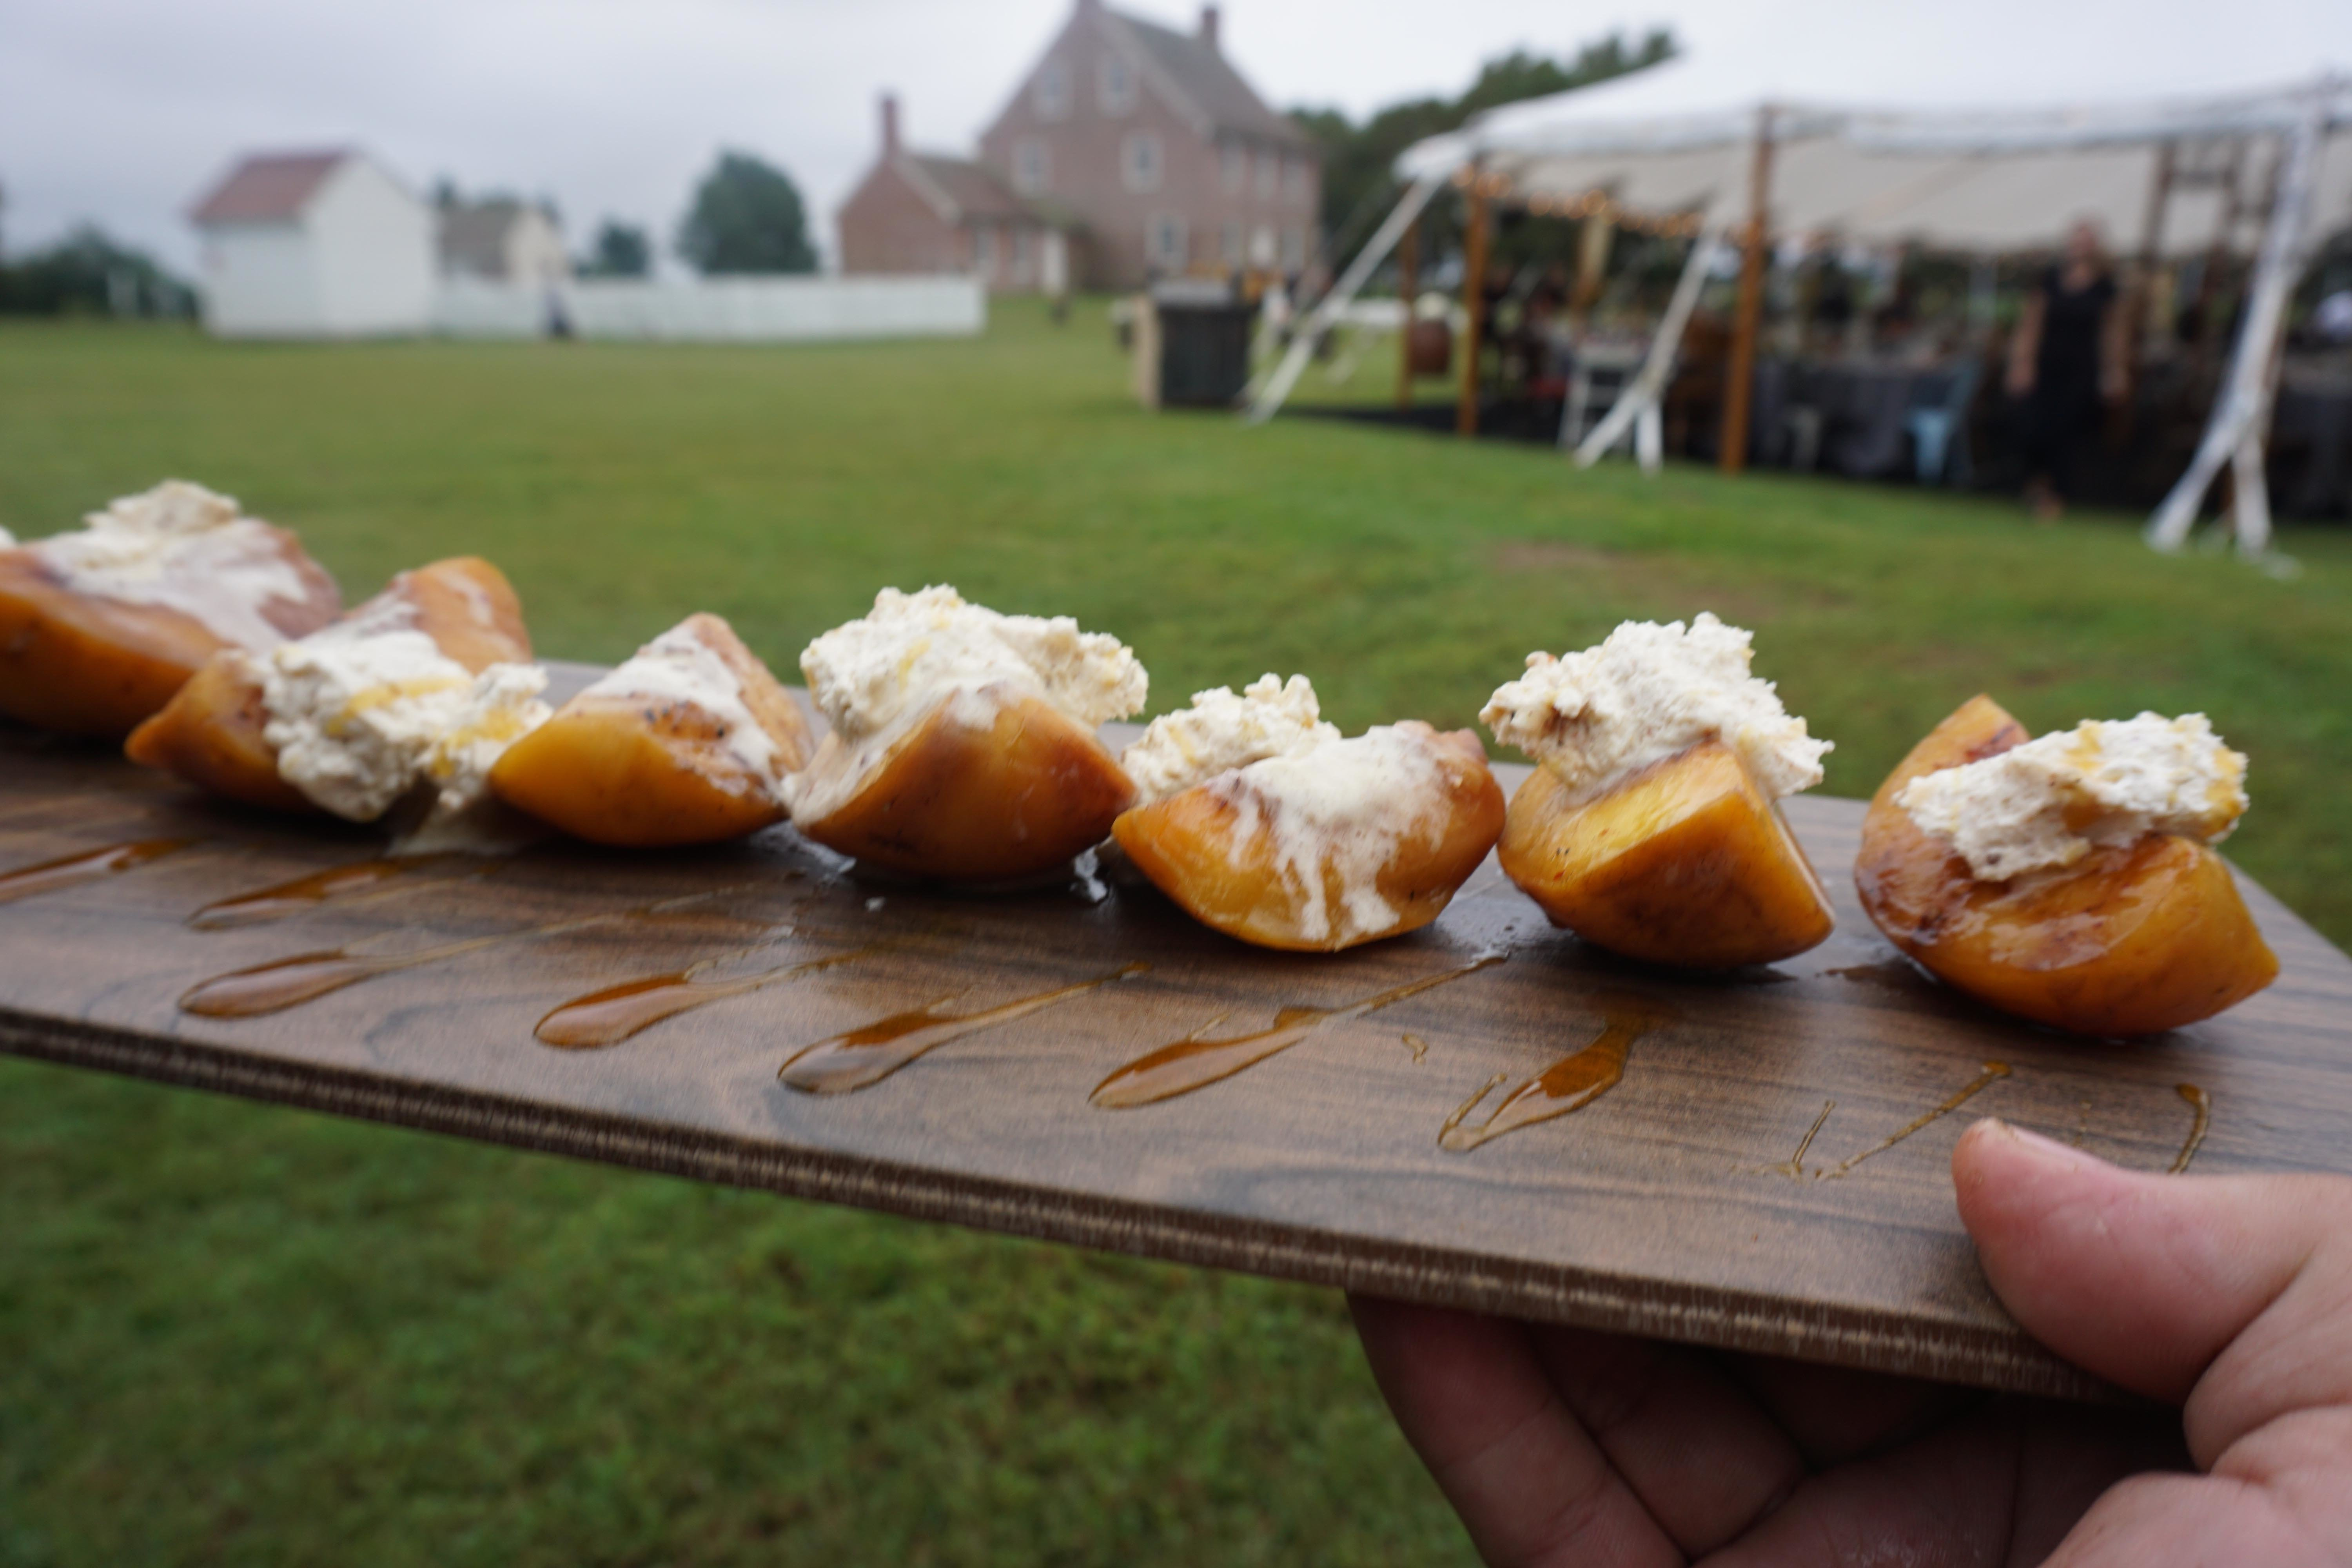 Sweet Potato Appetizer at Event